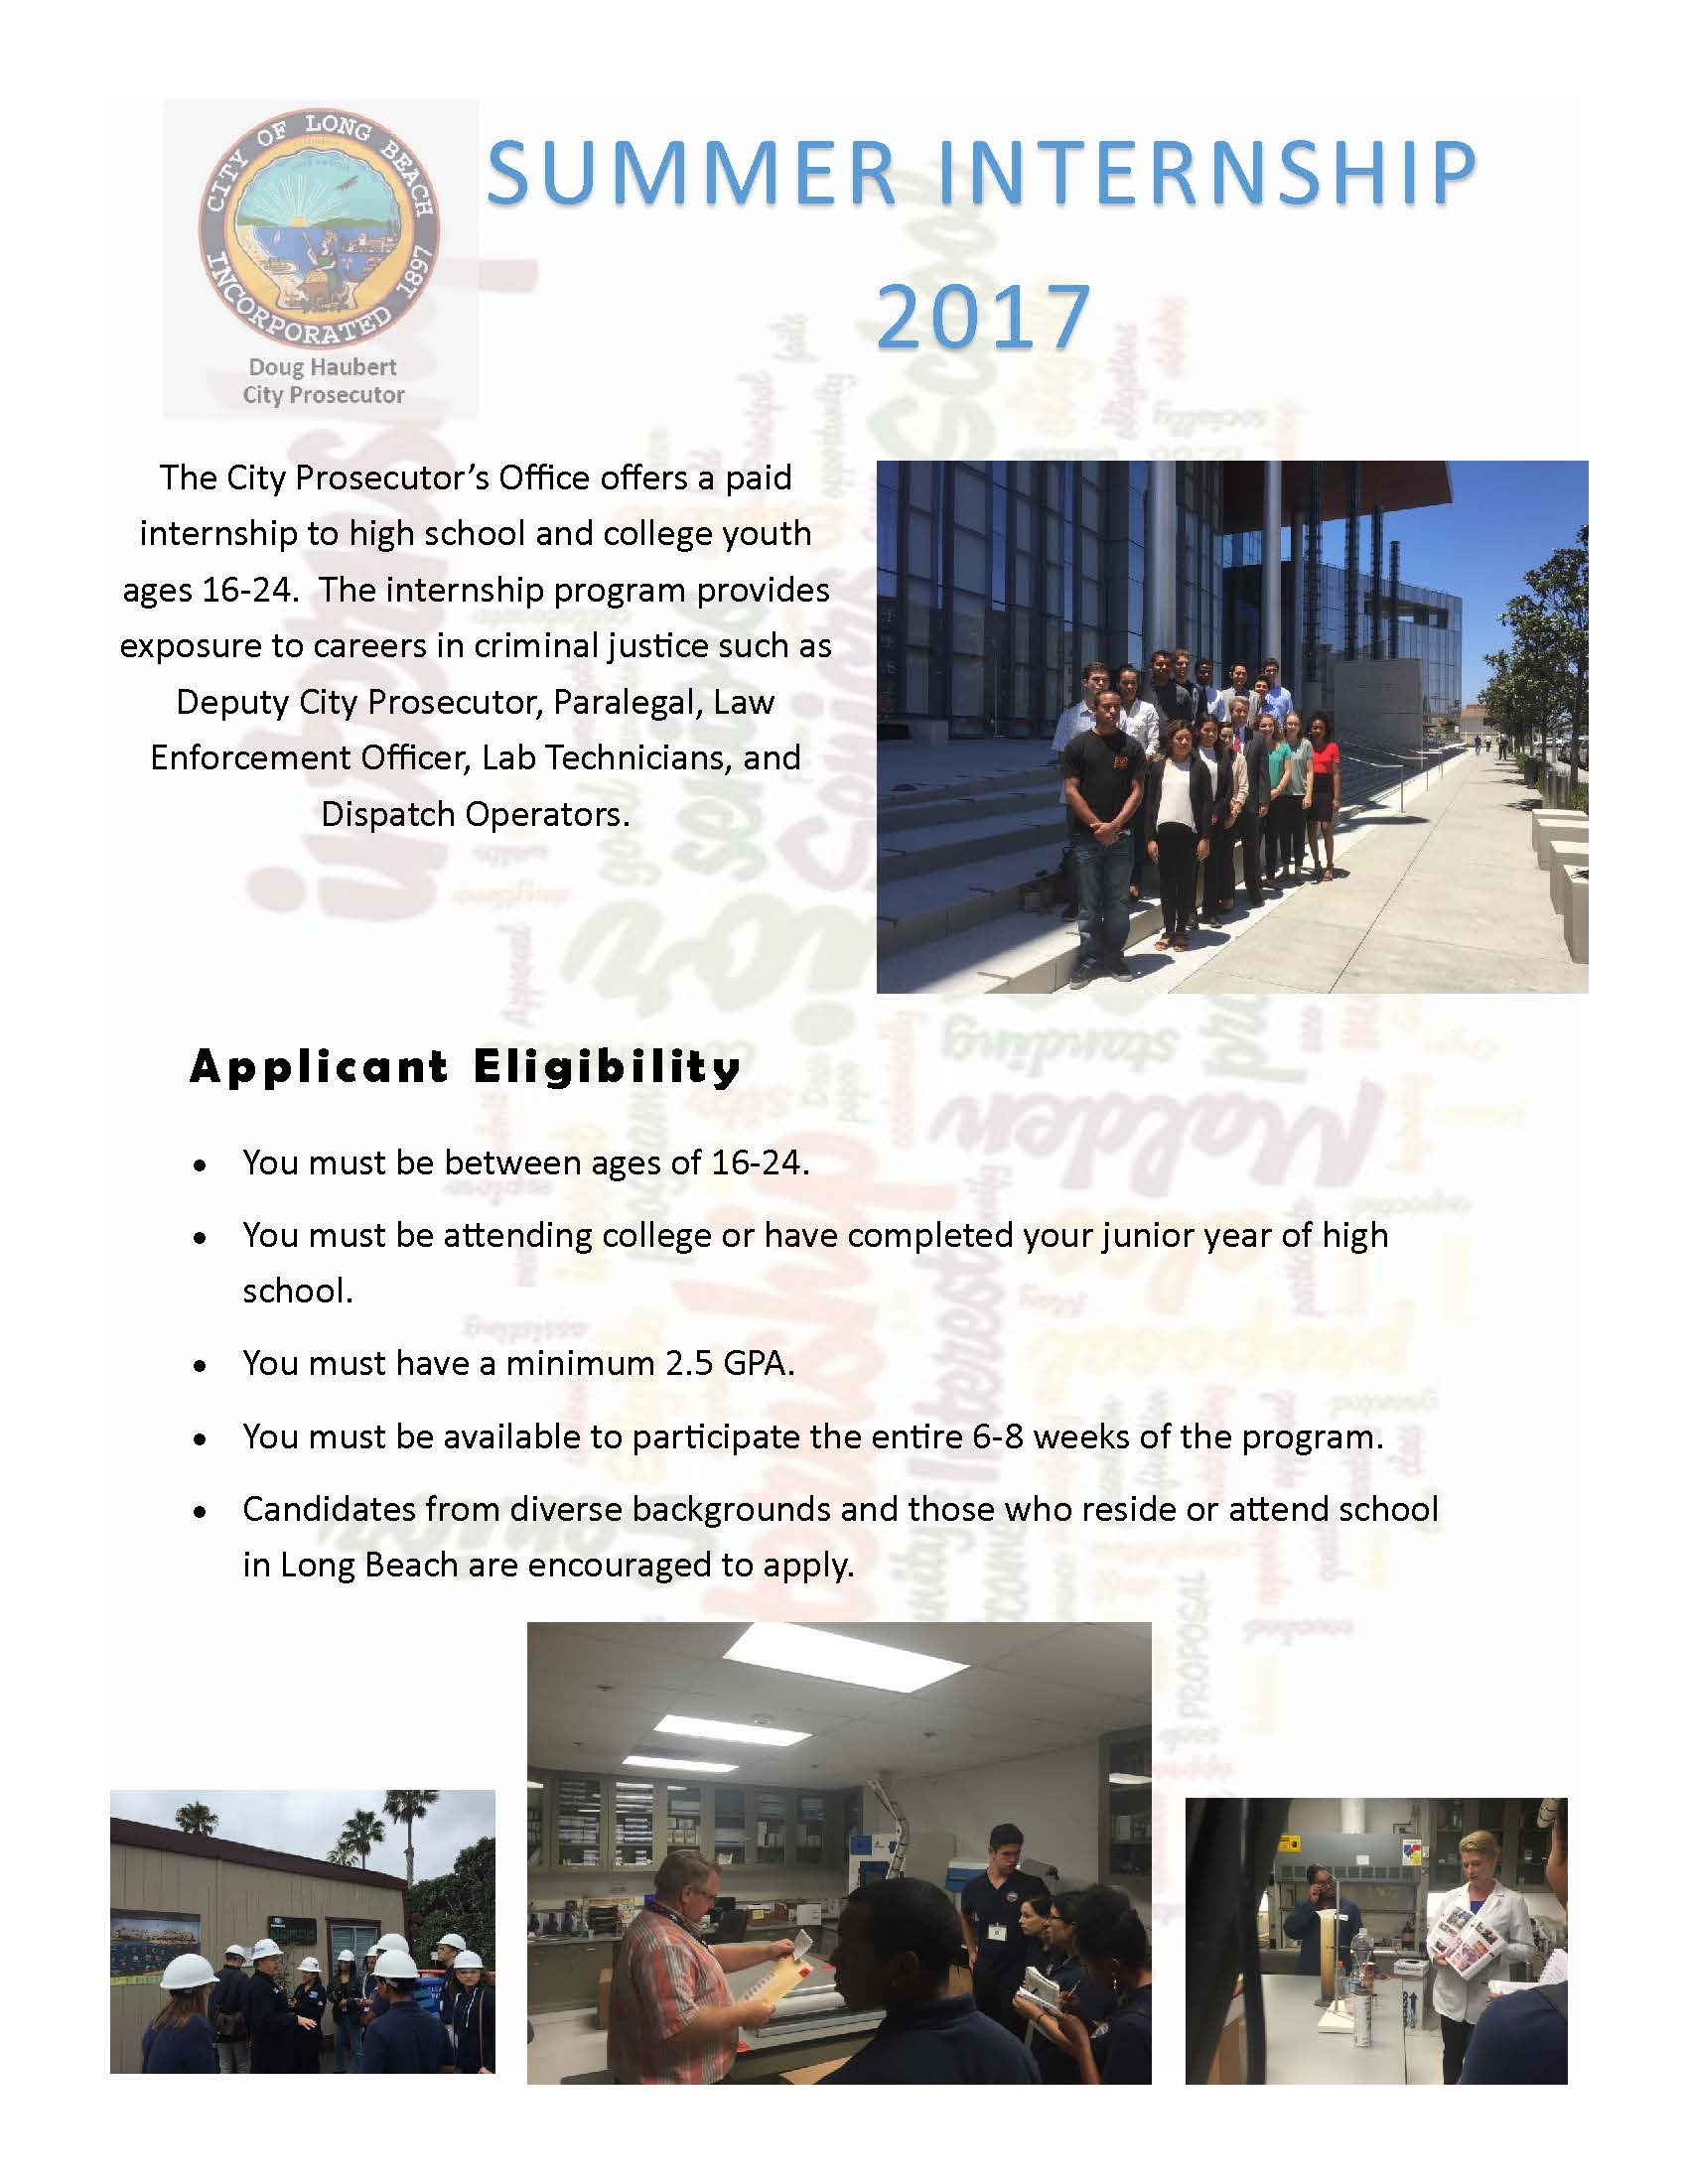 Summer Housing Intern Job Description U2013 Smith College This Page Provides A Job  Description For The Science Intern, Laboratory Based Research Summer ...